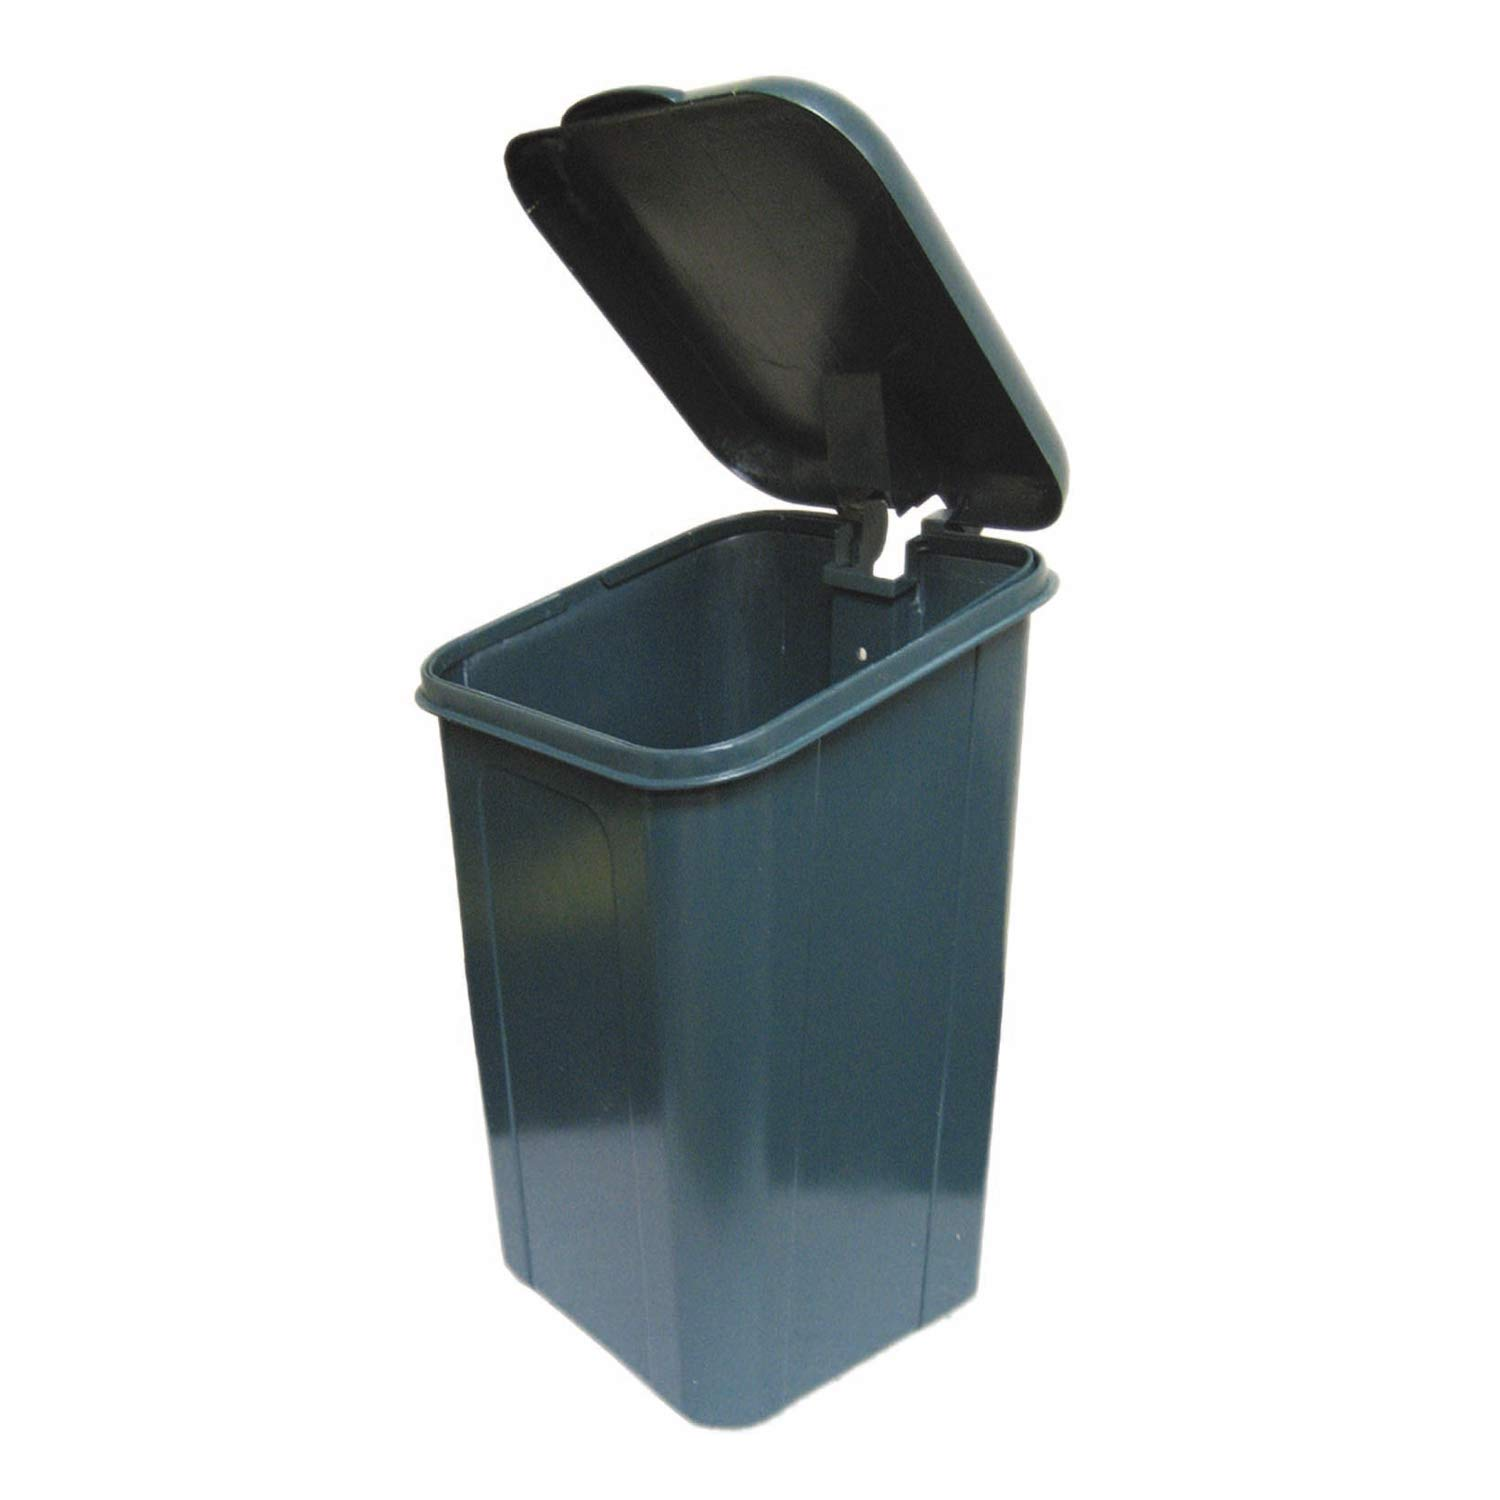 DOGIPOT 1208-L Trash Receptacle Lowest price 70% OFF Outlet challenge with Liner Lid and Polyethylene